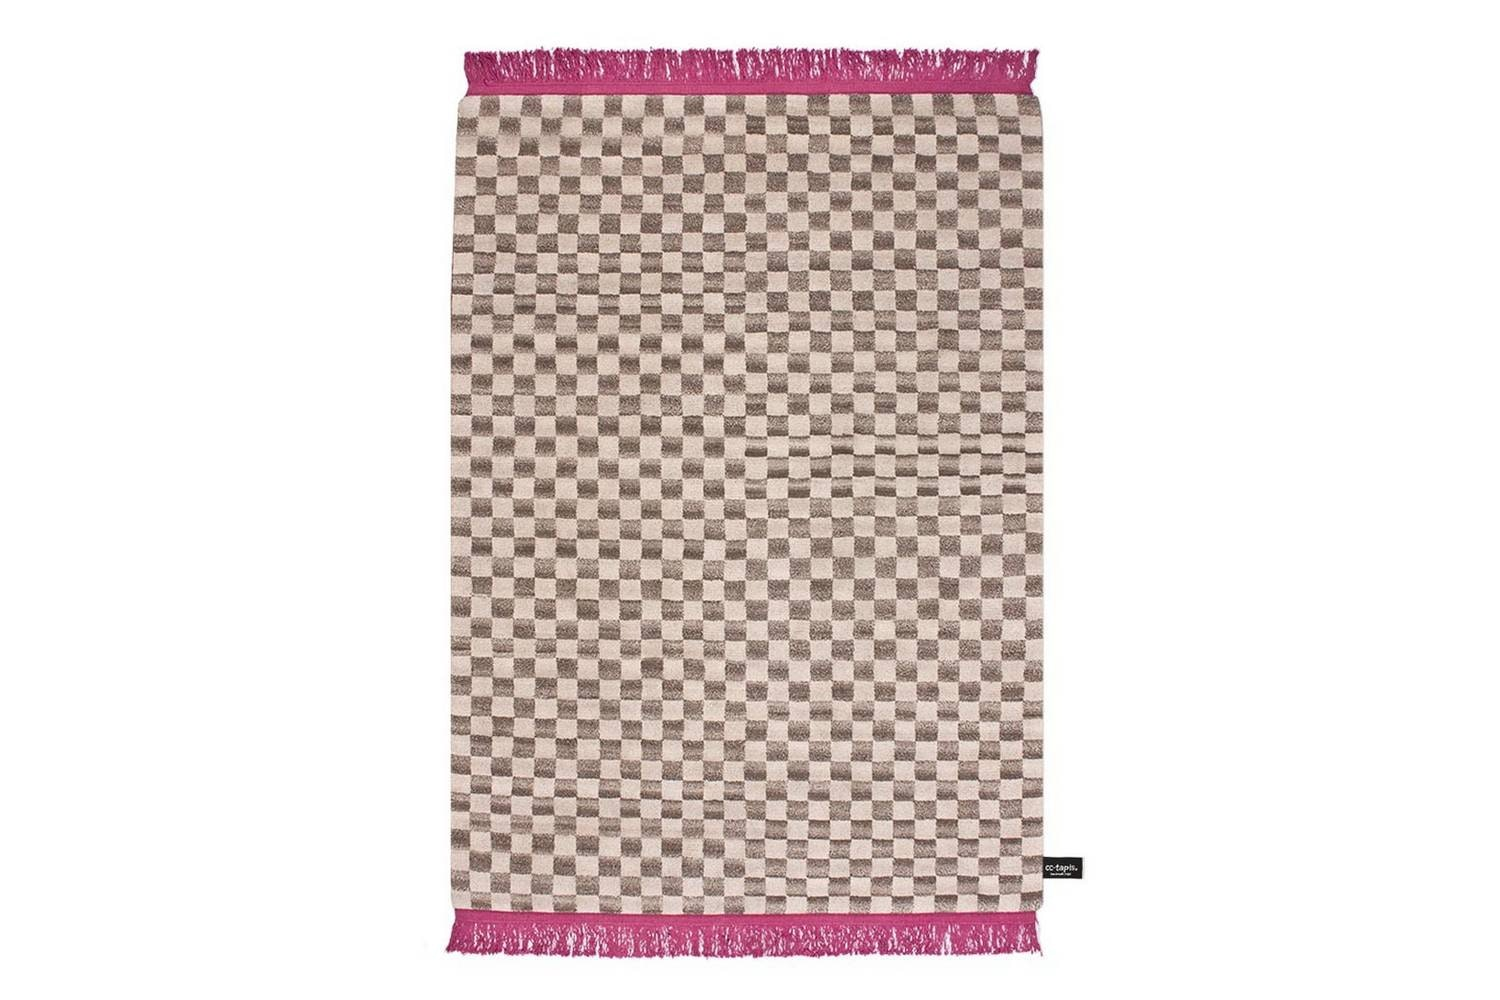 Traces De Damier Rug by Traces De Memoire Collection for CC-Tapis